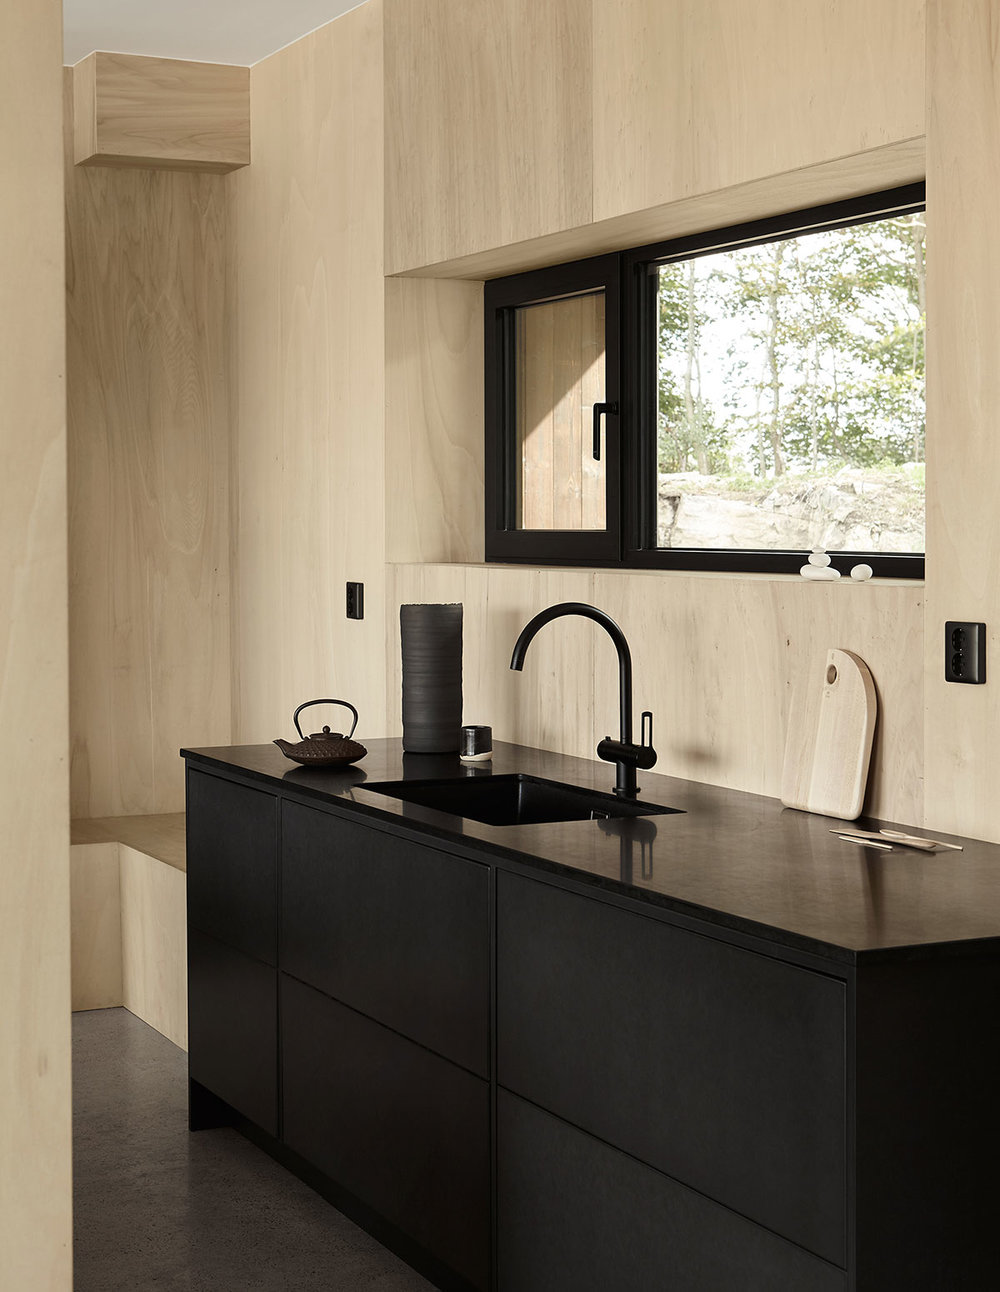 Bespoke black architect kitchen design for Emma Bernhard